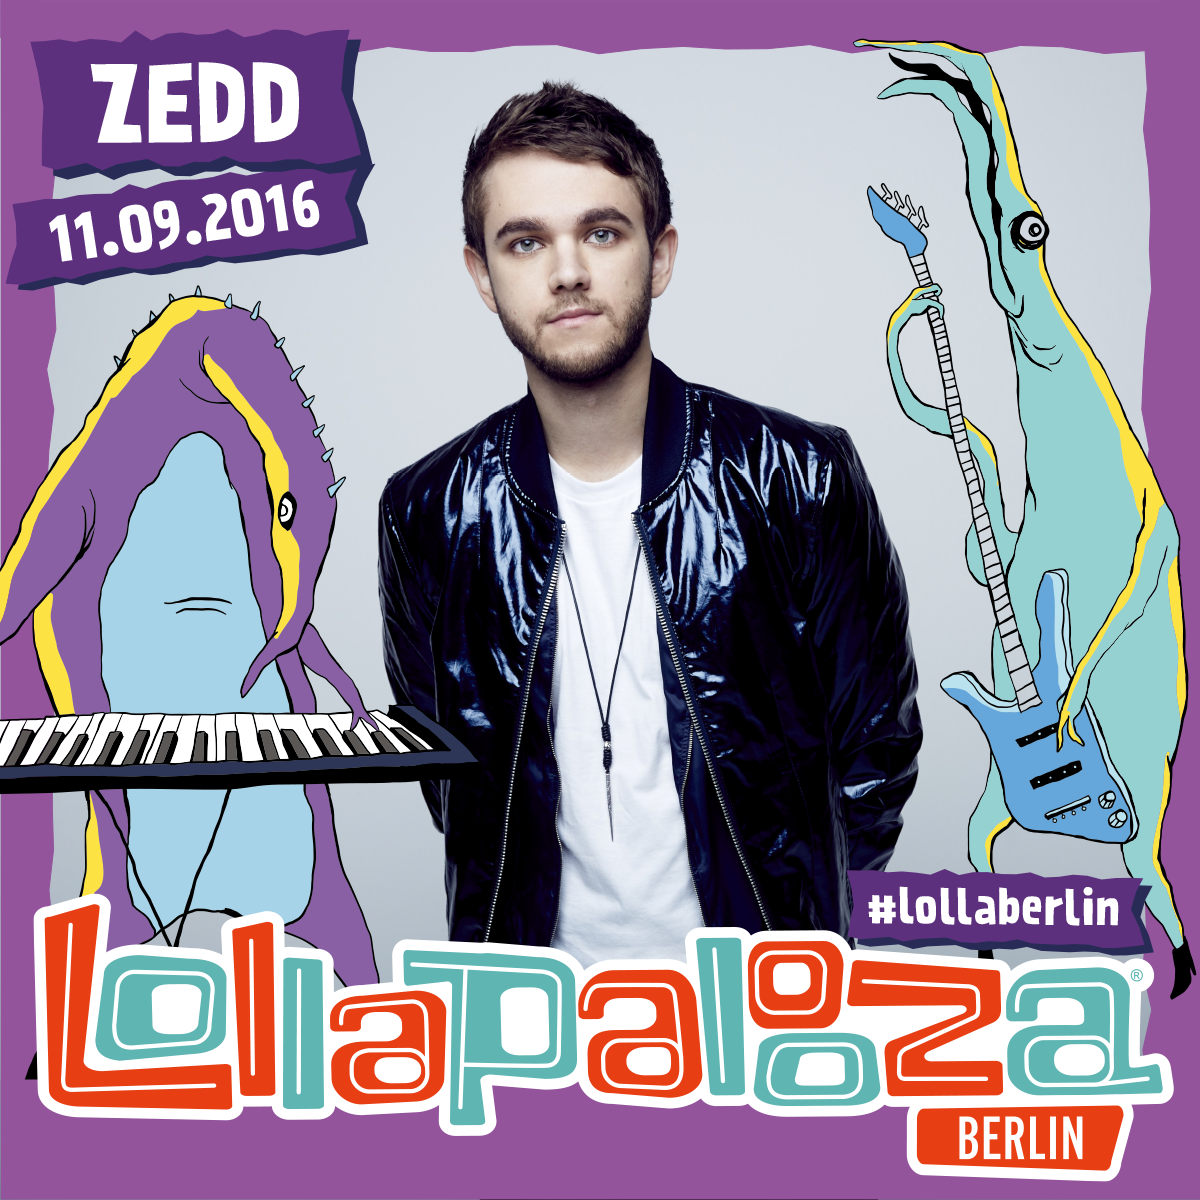 Hooray, the Billboard Music Awards for Top Dance/Electronic Album goes to @Zedd this year!   #BBMAs #lollaberlin https://t.co/pPgEoYNSqp